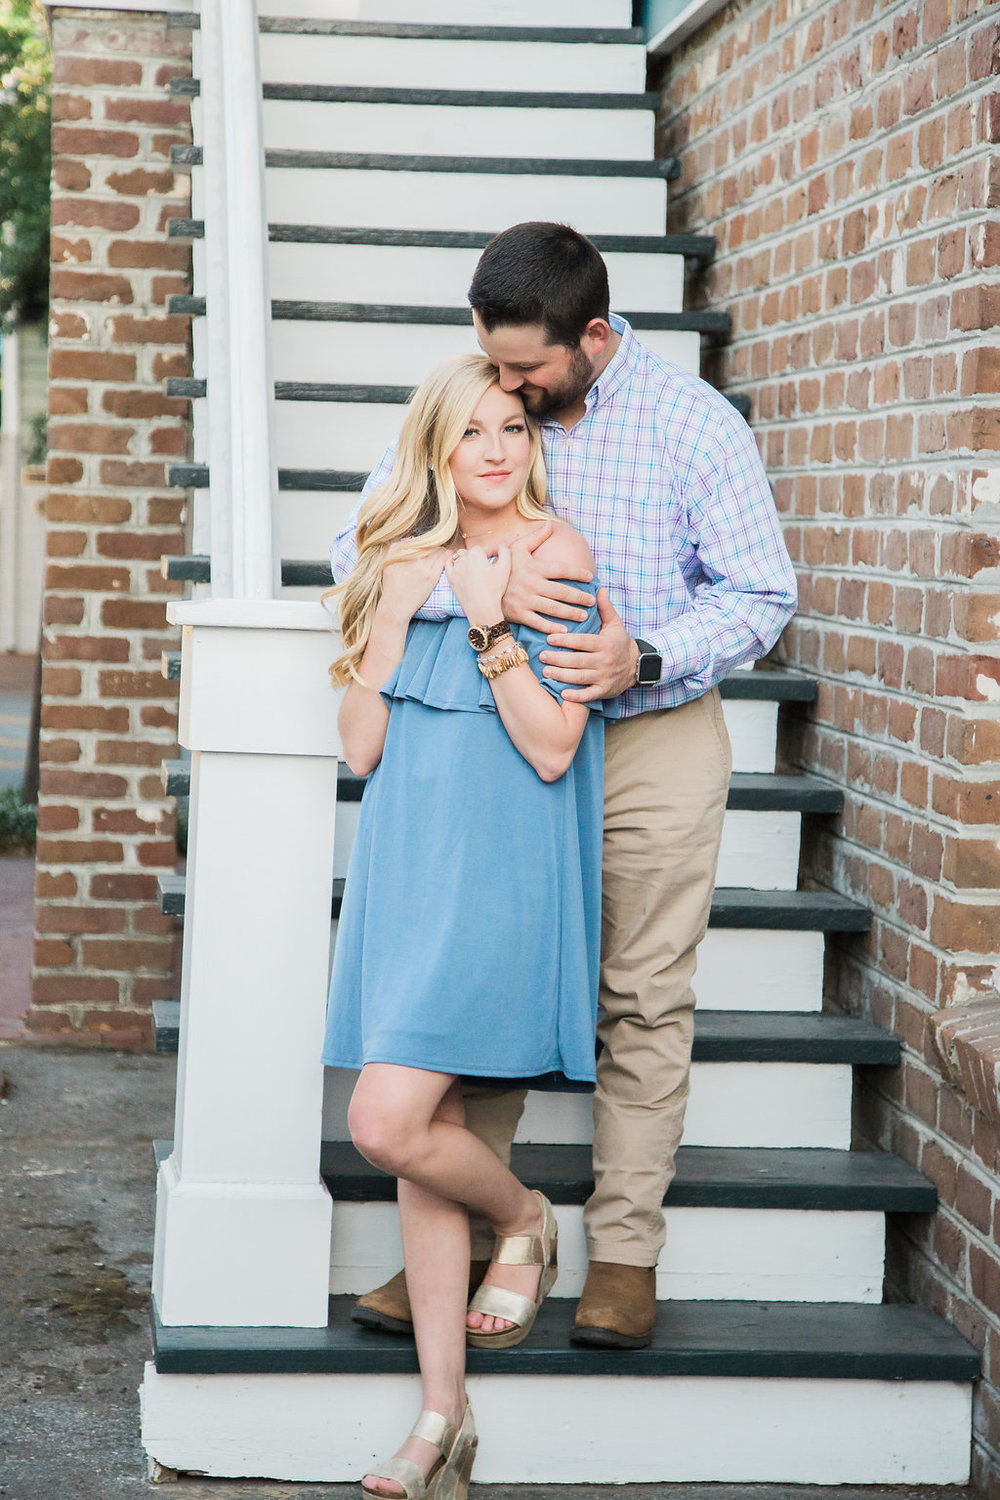 downtown-savannah-engagement-by-kasie-tanner-photography